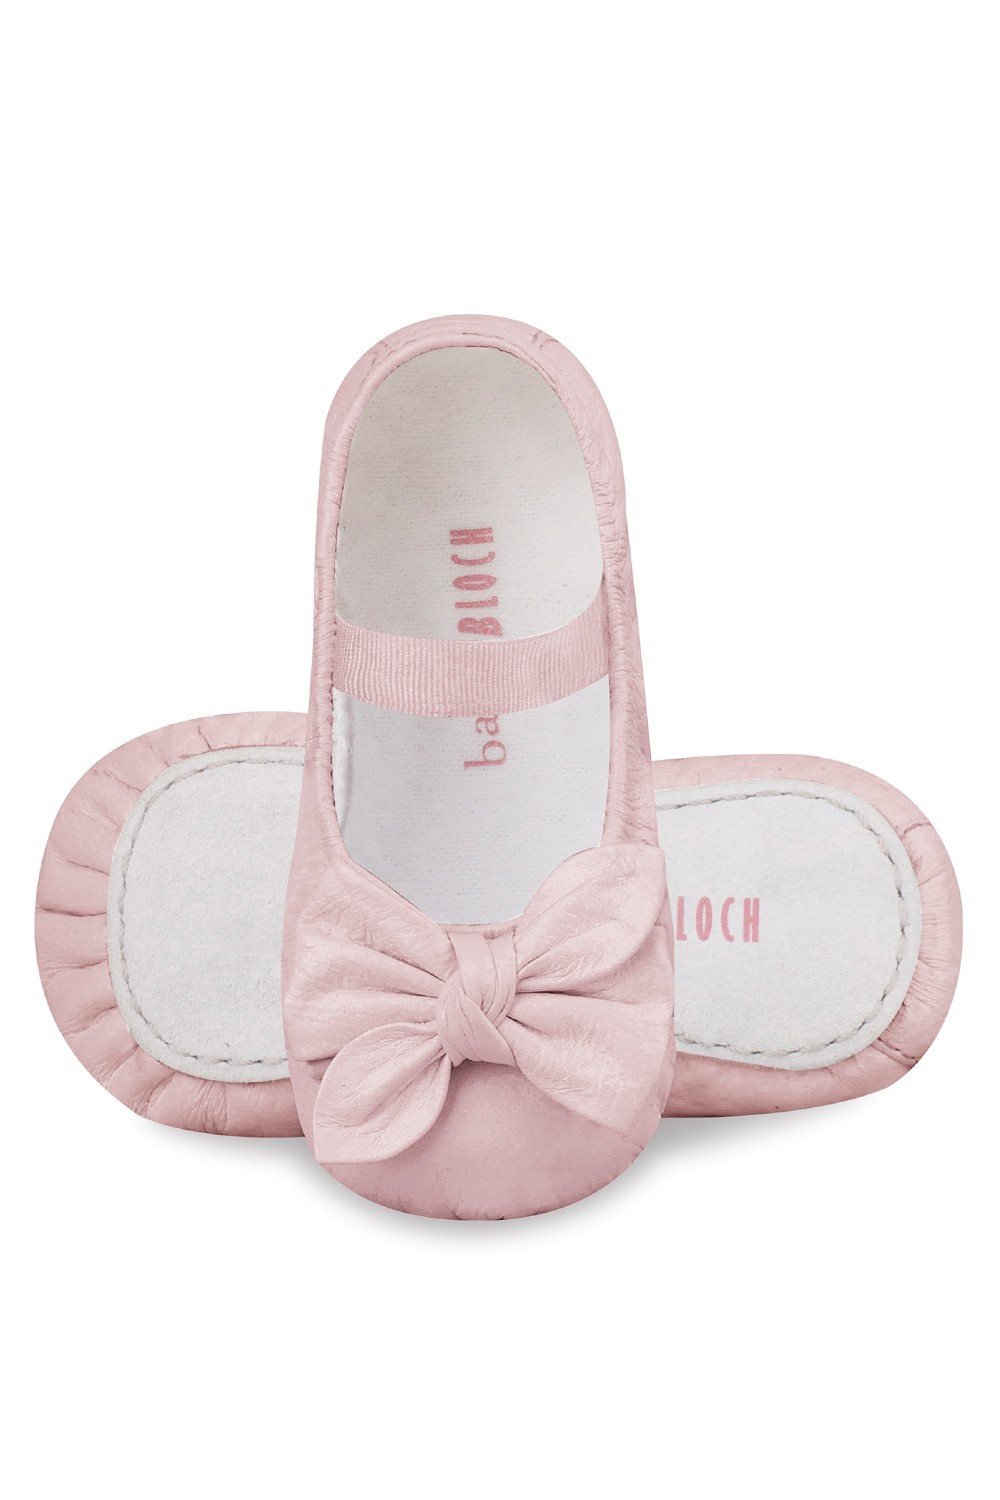 Clara - Bébé Babies Fashion Shoes